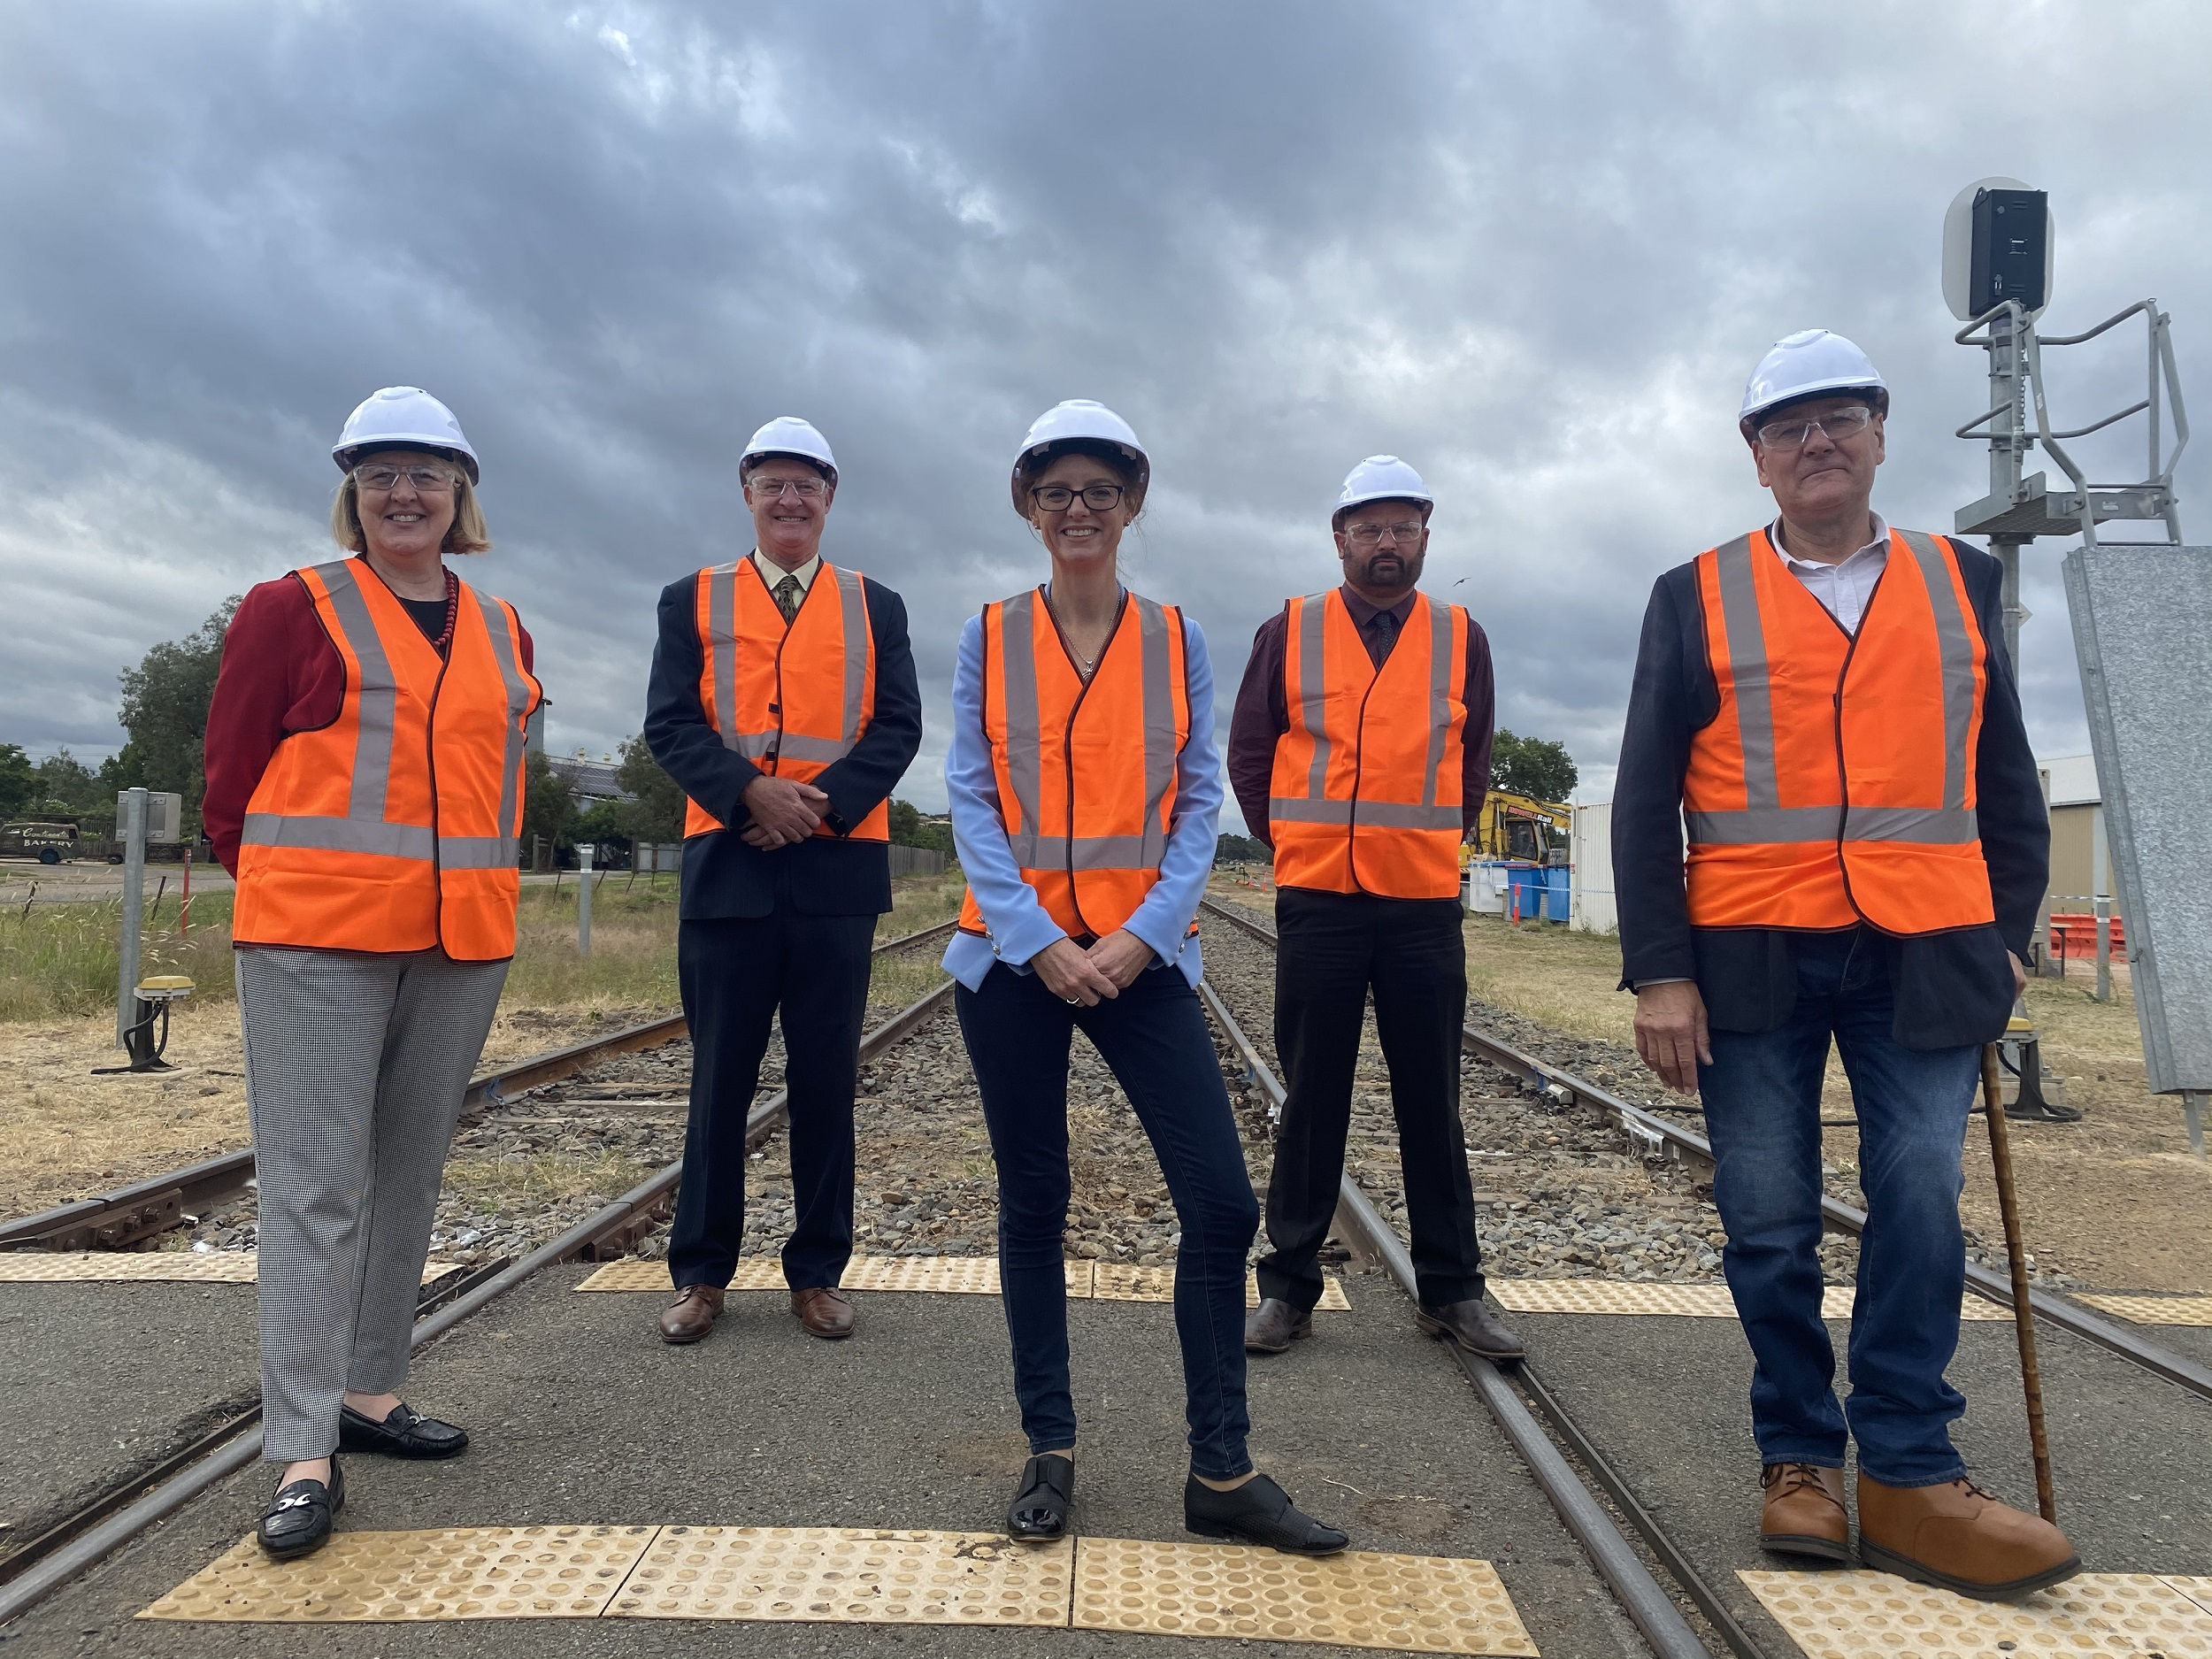 Sam Knight, Luke Taberner, Steph Cooke MP, Cole Davis Neil Smith stand on railway lines, wearing high vis vests and hard hats.